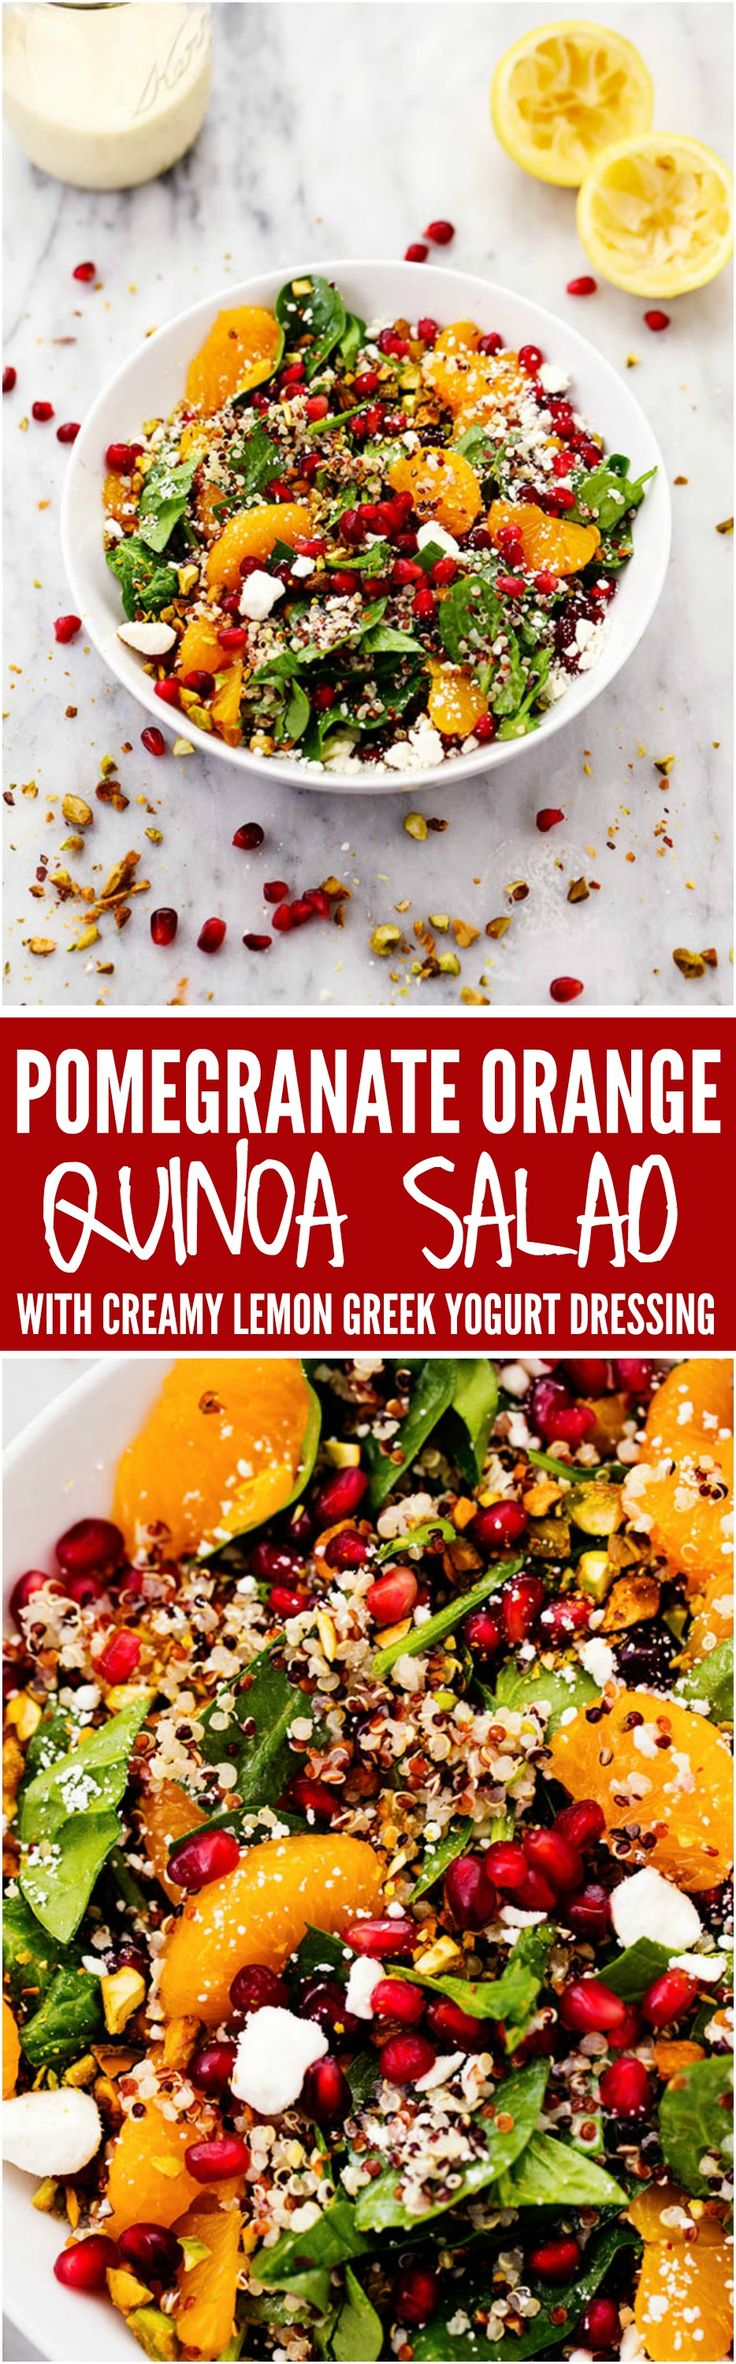 A mouthwatering winter salad with quinoa, spinach, mandarine oranges, and crunchy pistachios. Topped with a creamy lemon greek yogurt dressing and feta cheese this makes one unforgettable salad!